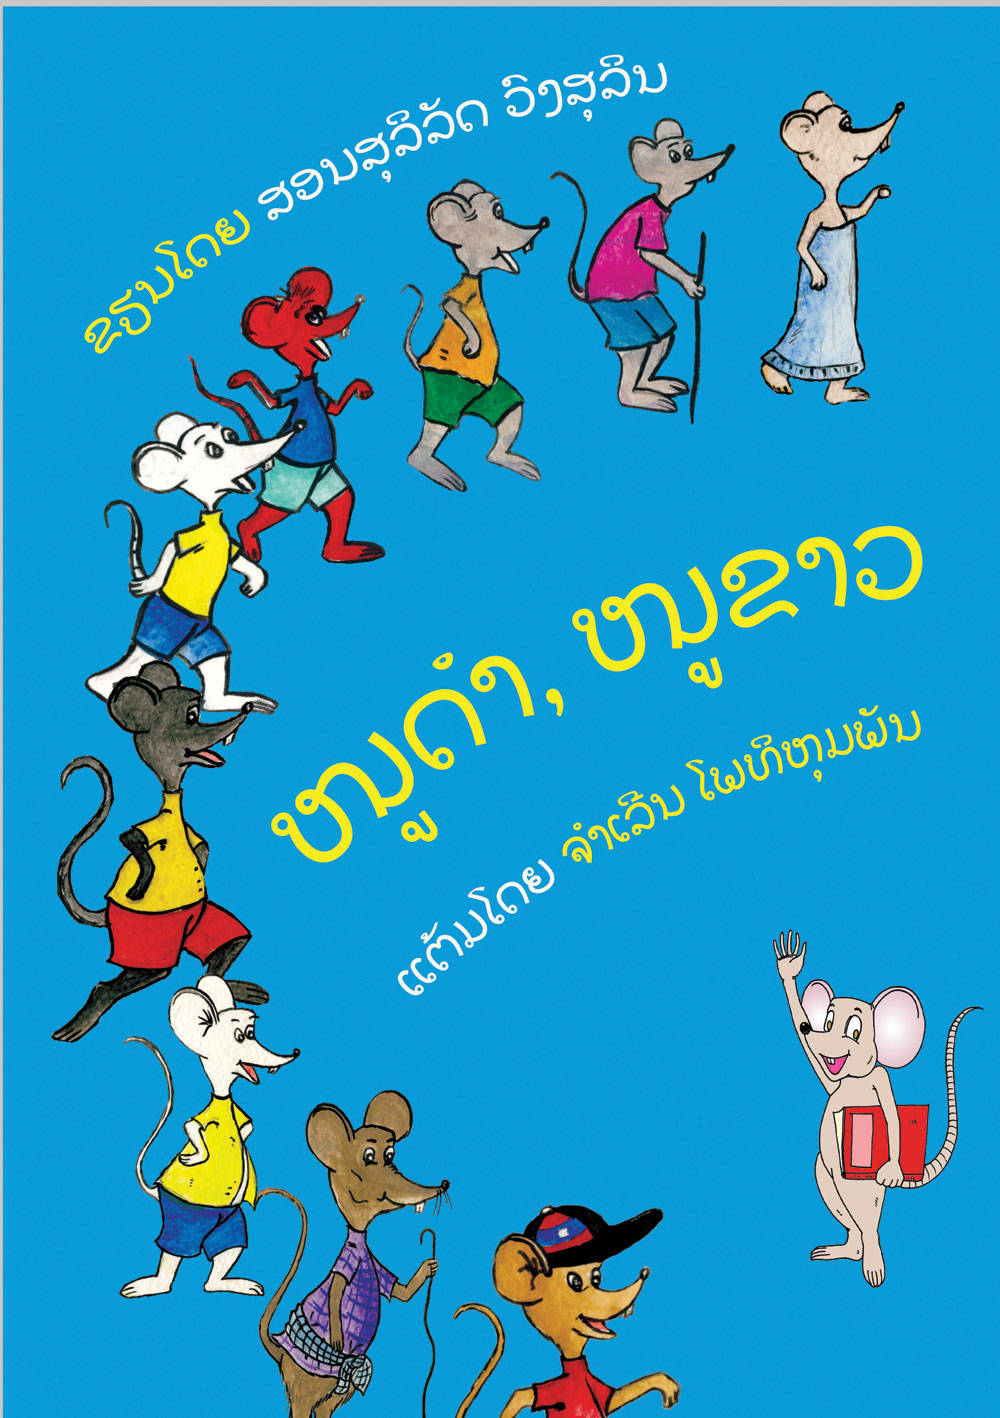 Black Mouse, White Mouse large book cover, published in Lao language